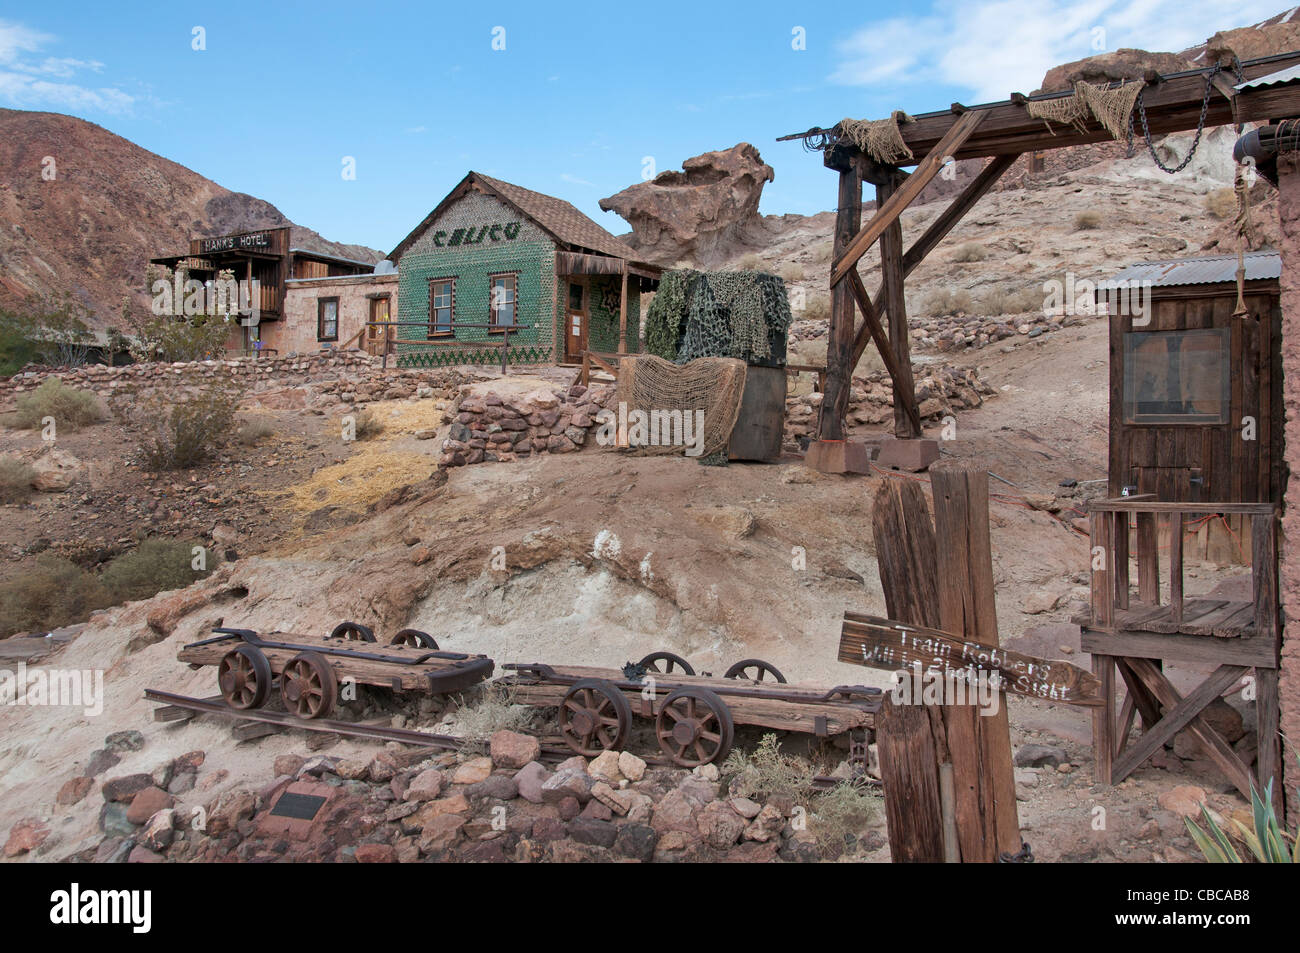 California Barstow Calico ghost  town old silver mining gold rush California United States - Stock Image